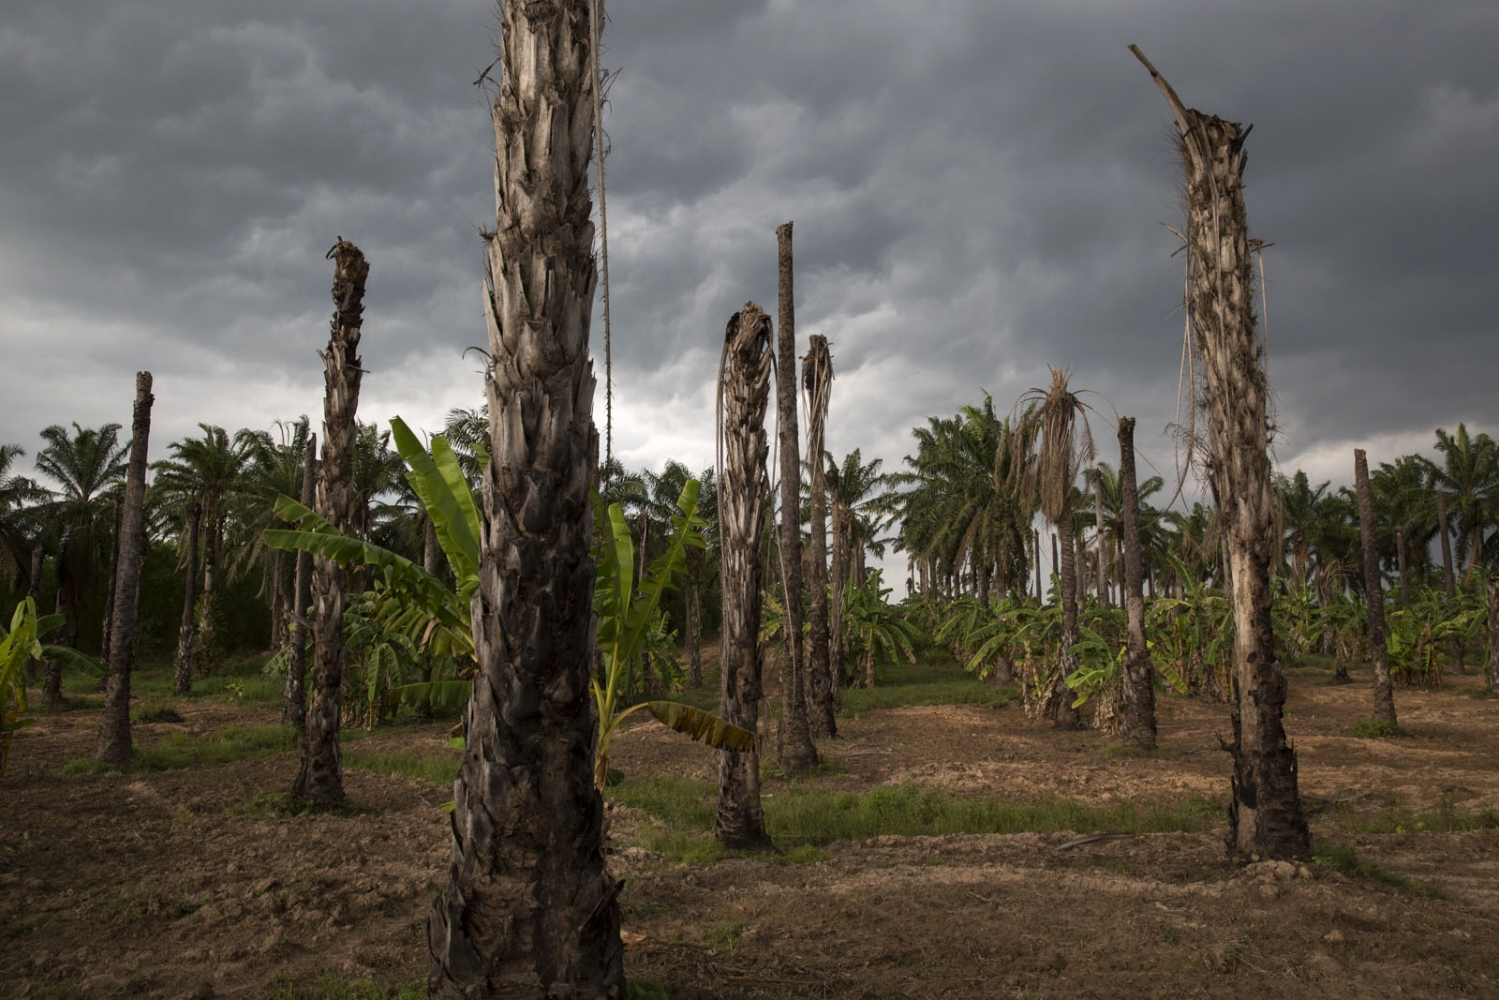 A storm approaches an area of dead palm oil trees within the boundaries of Klong Sai Pattana community. The villagers are now beginning to prepare the land to grow other crops on. May 2016.